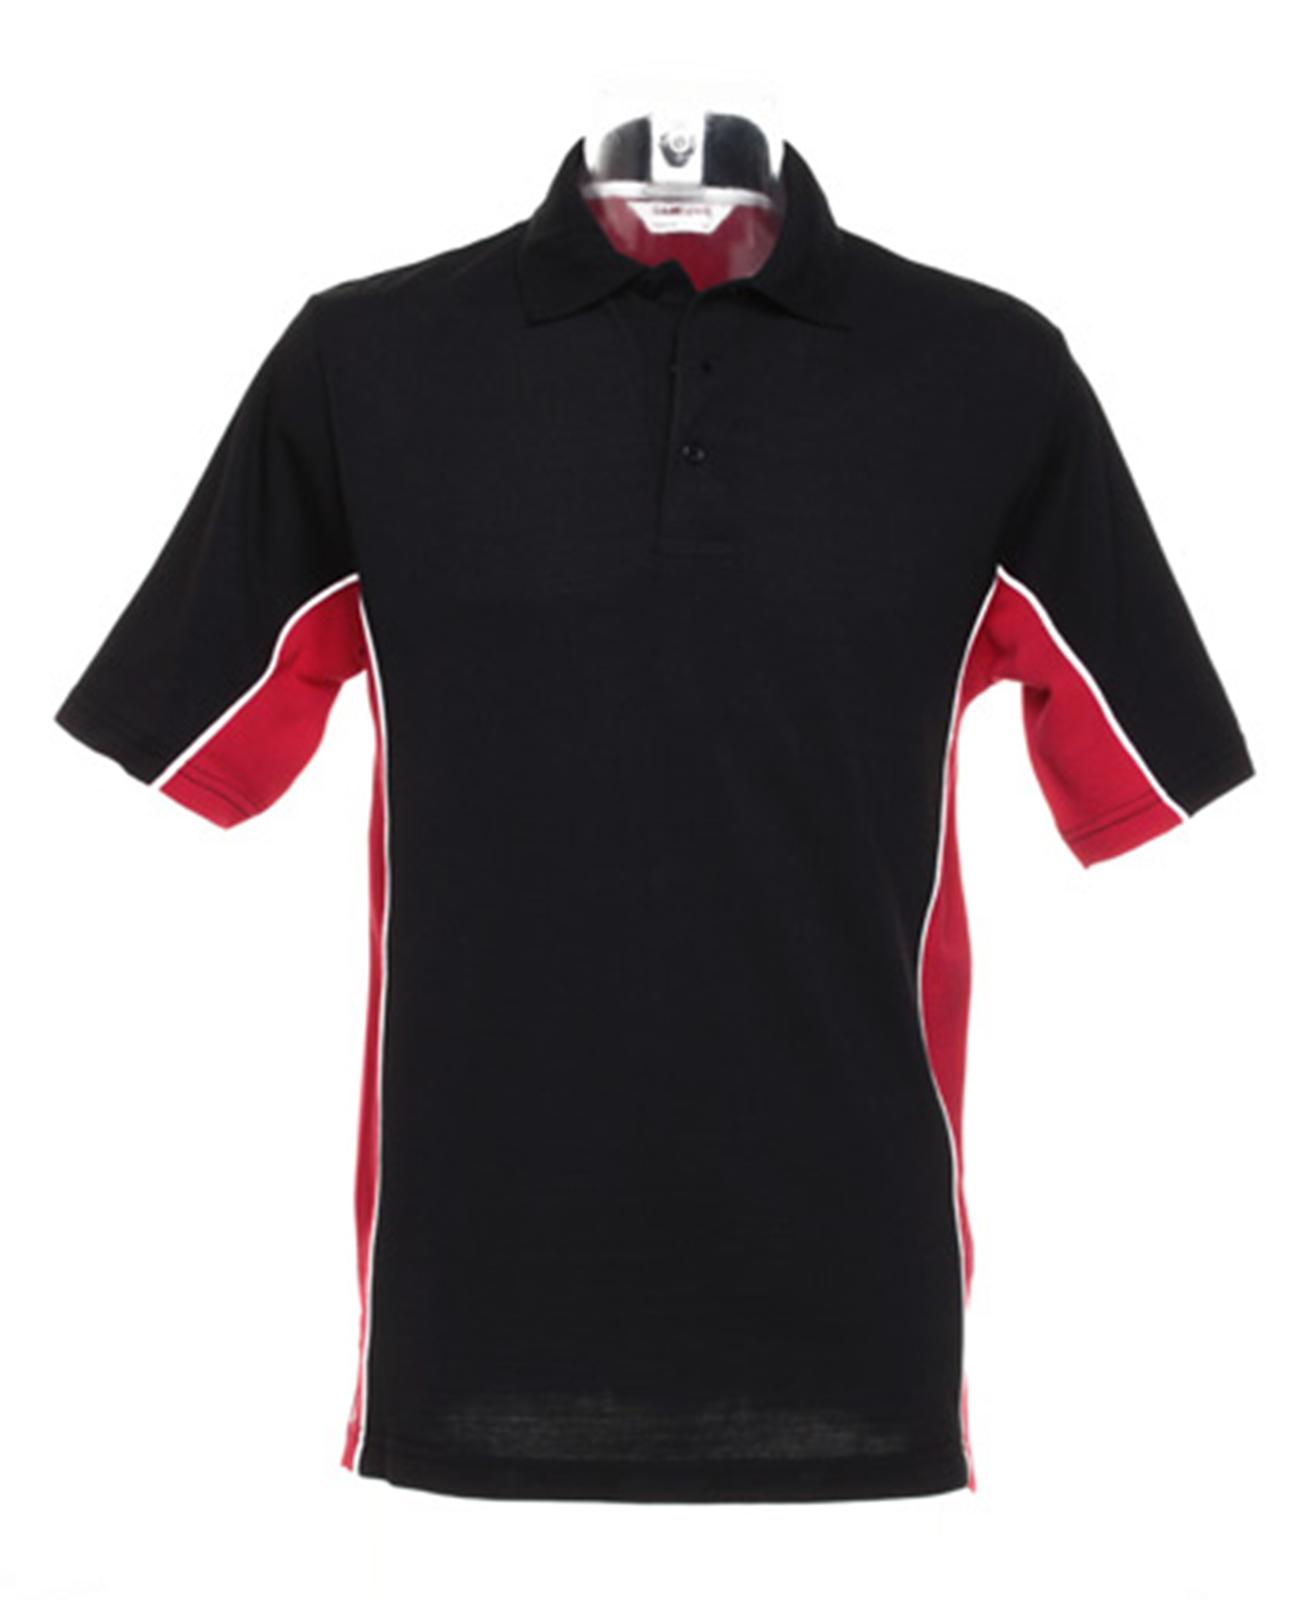 Nuevo-Kustom-Kit-Para-Hombre-Para-Mujer-Track-Camisa-Polo-En-12-Colores-Xs-S-M-L-Xl-2xl-3xl